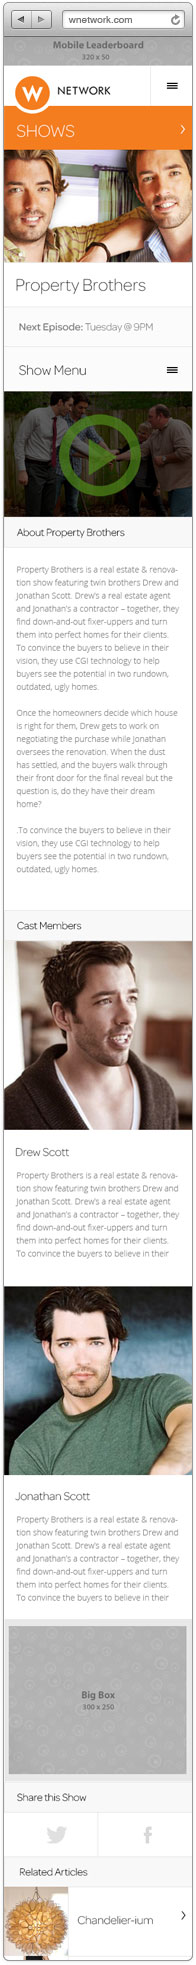 Mobile layout of the Property Brothers show page on the WNetwork website open in the browser